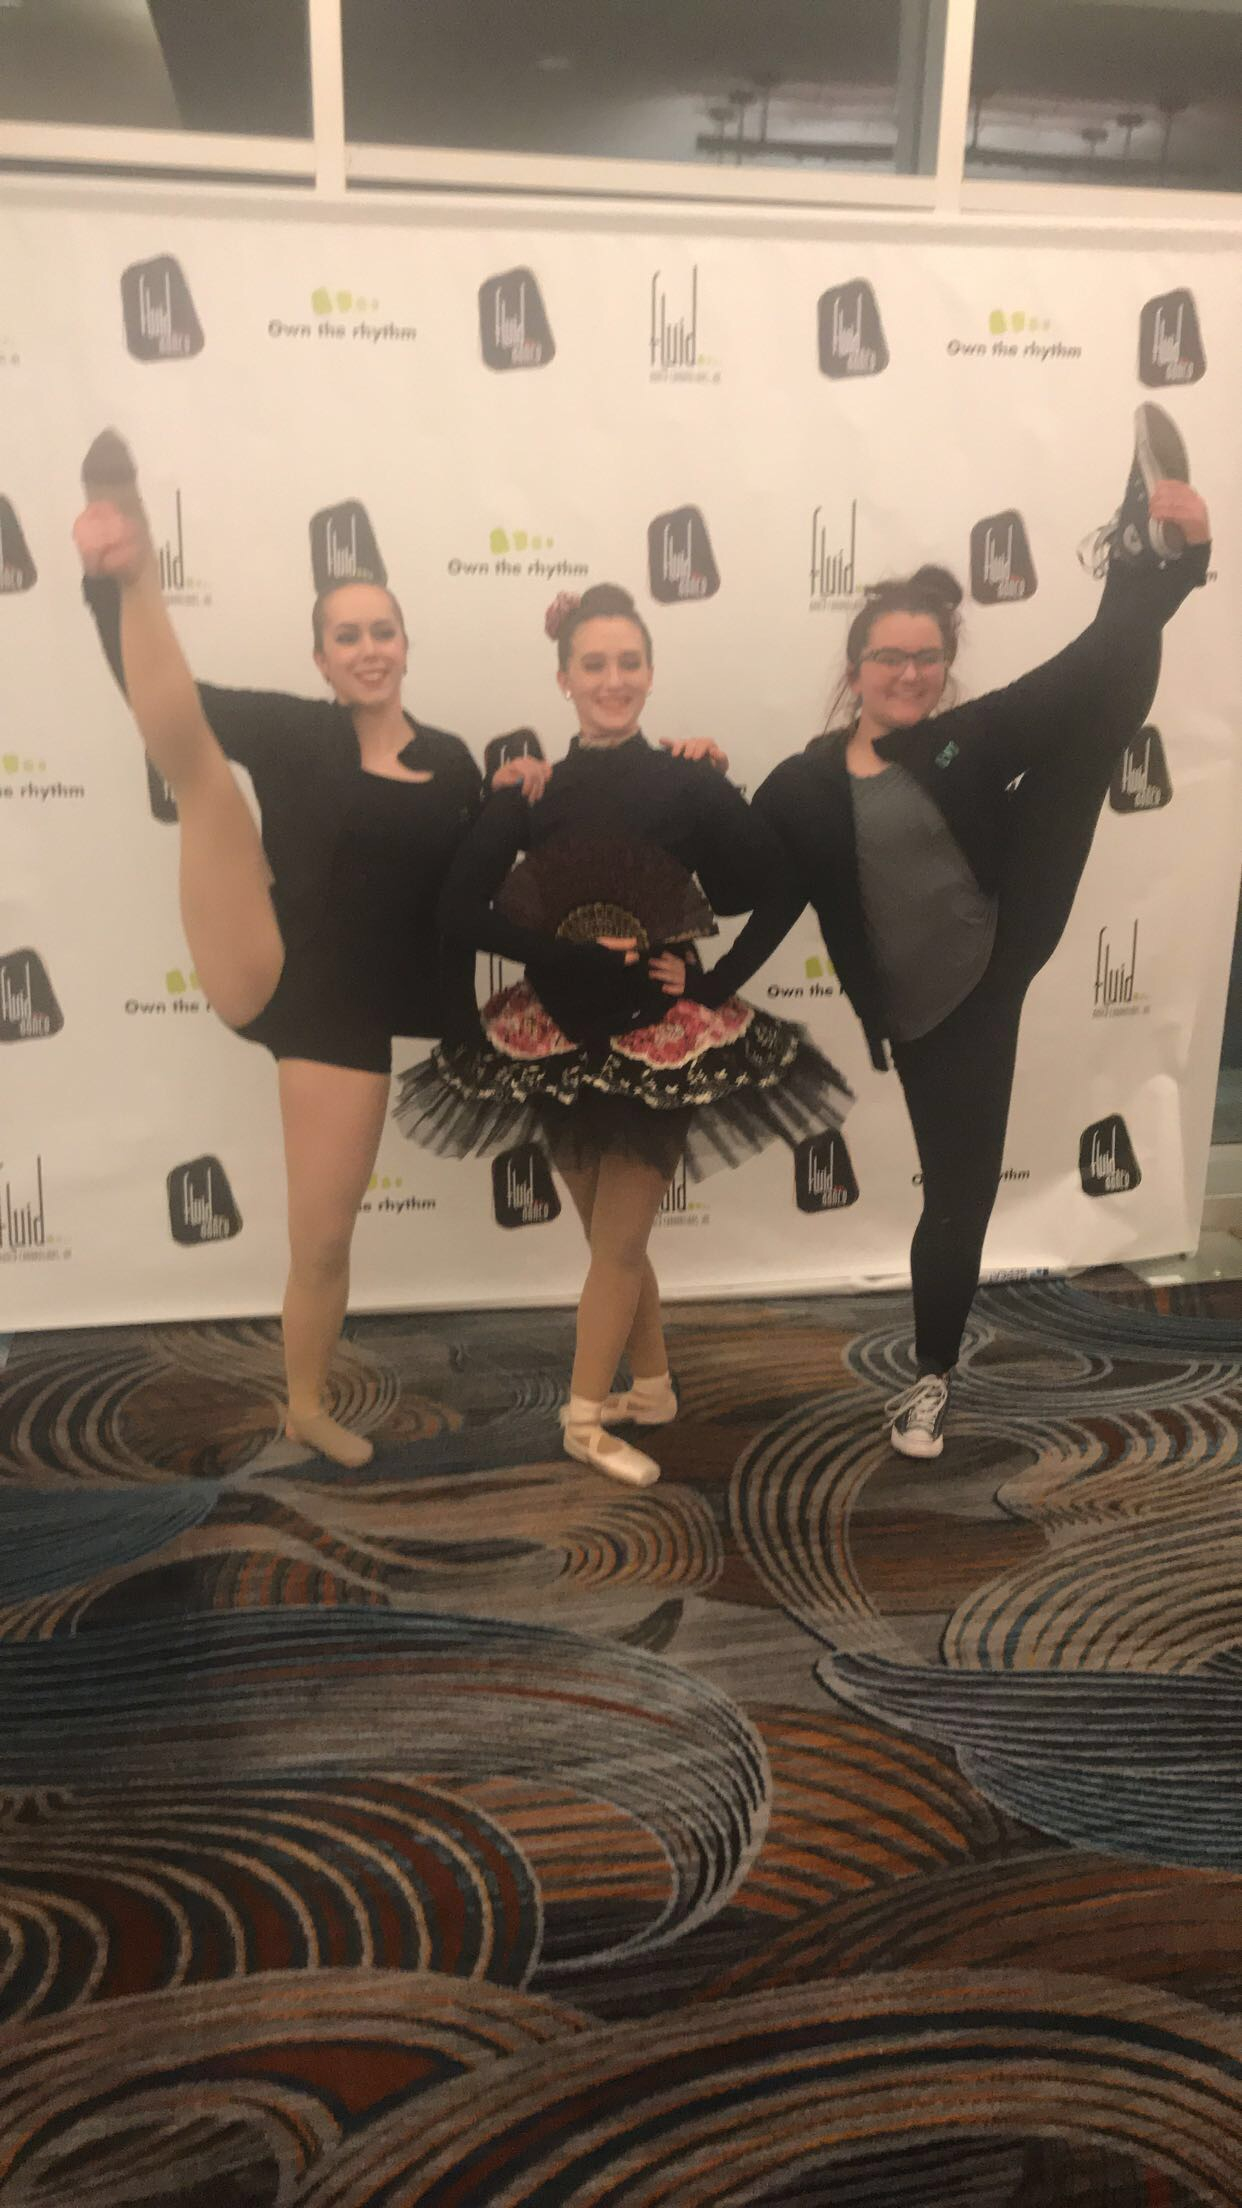 Competitive dancers posing